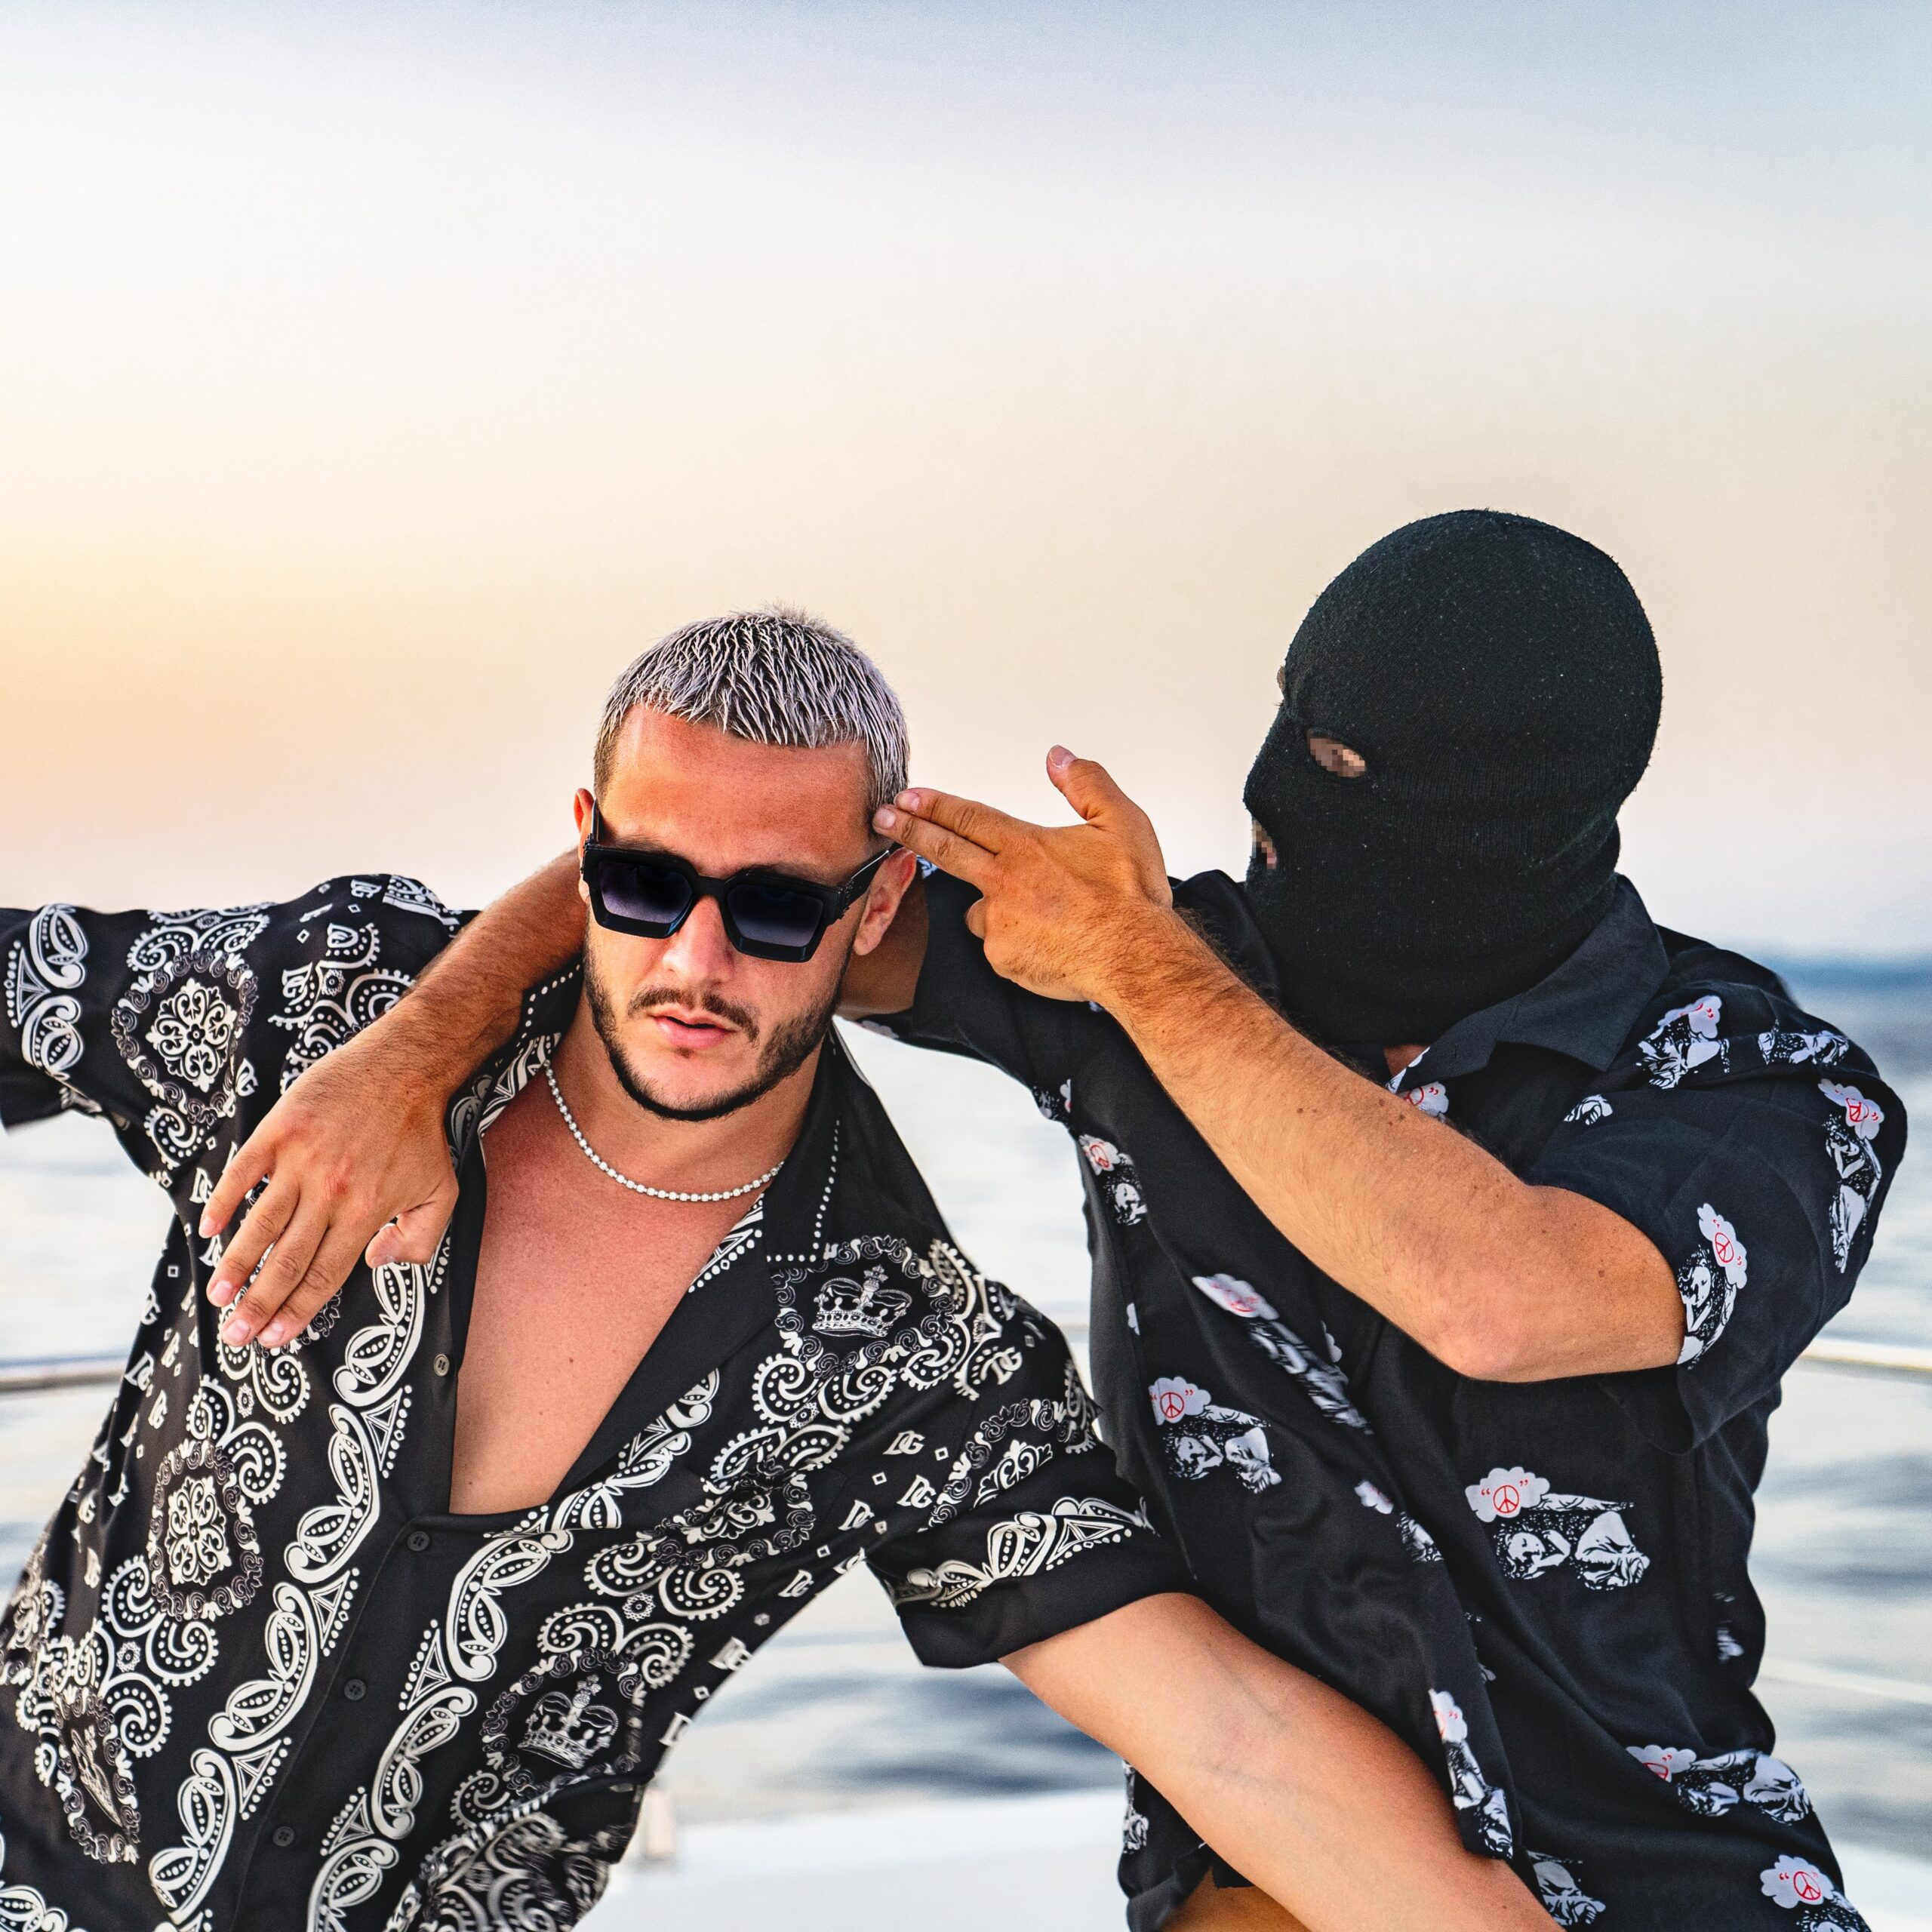 DJ Snake and Malaa via Guess Agency for use by 360 Magazine